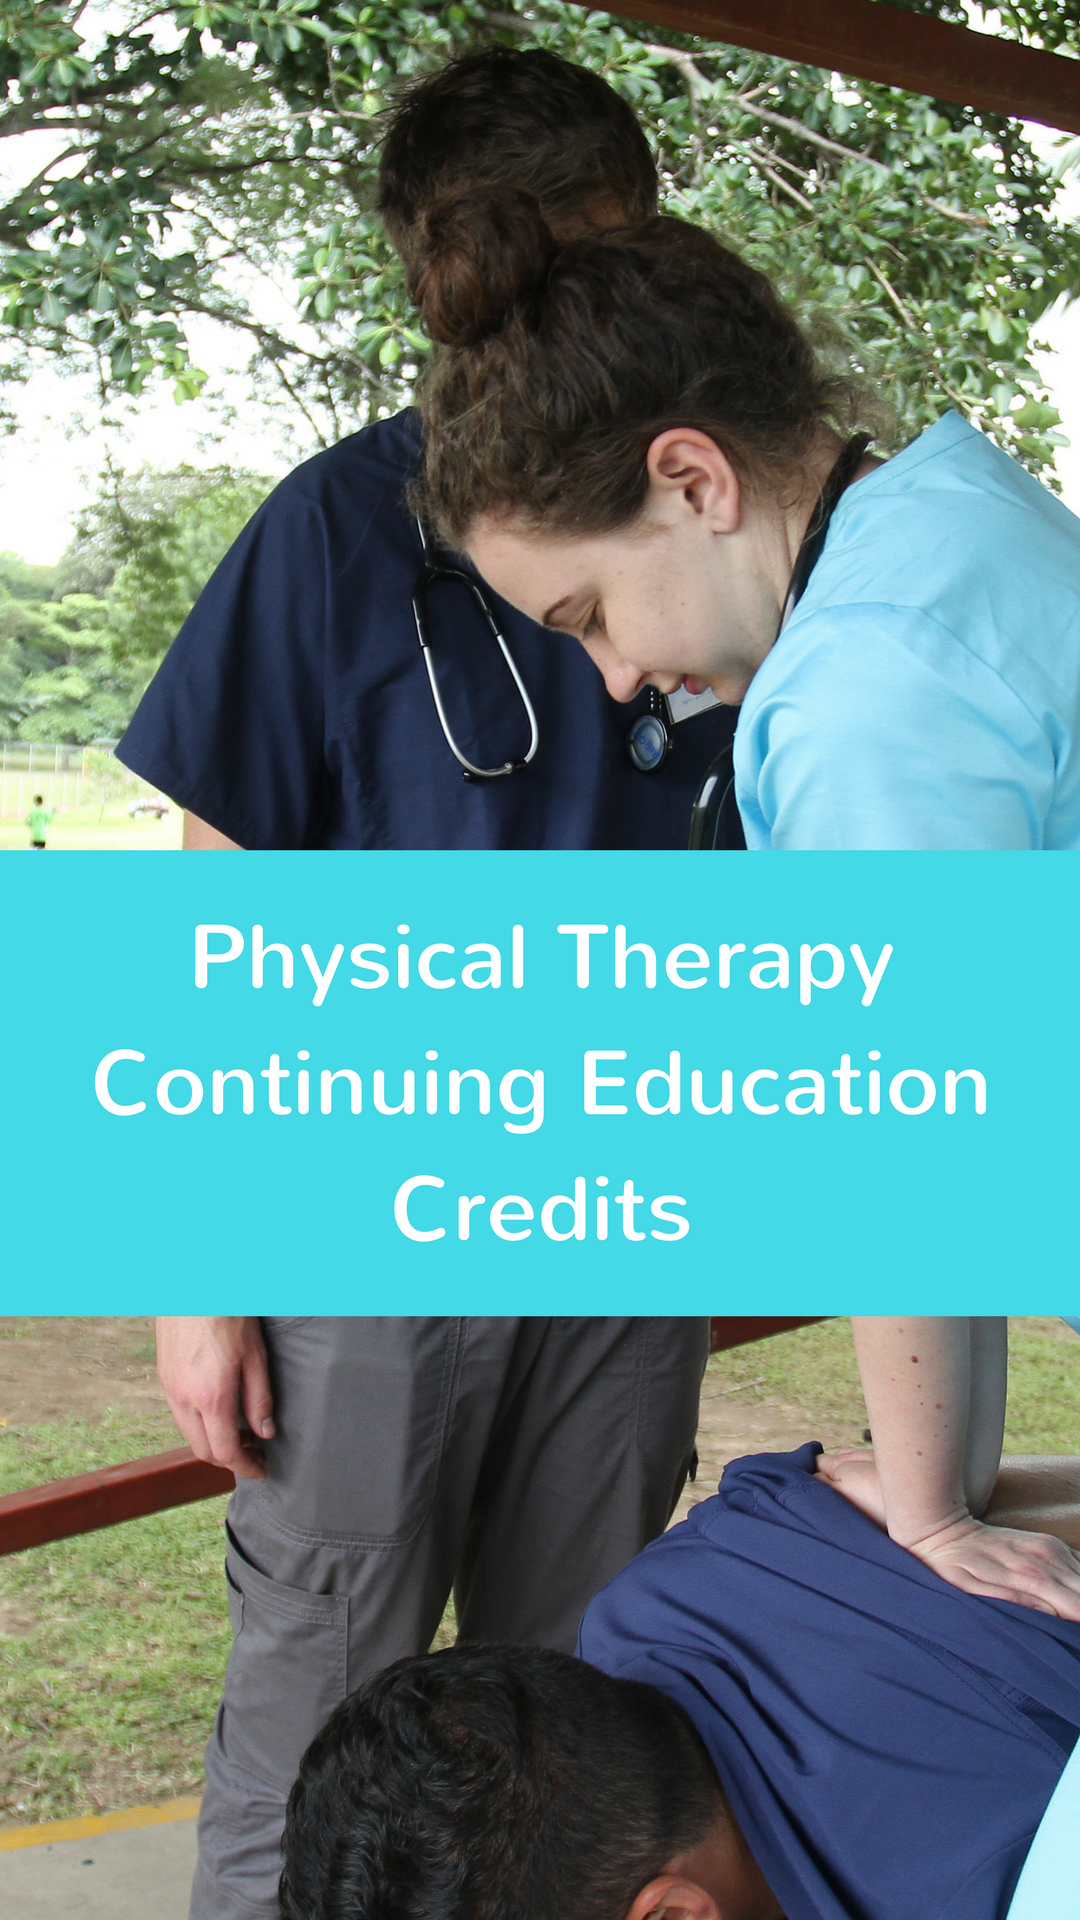 Physical Therapy Physical therapy, Continuing education